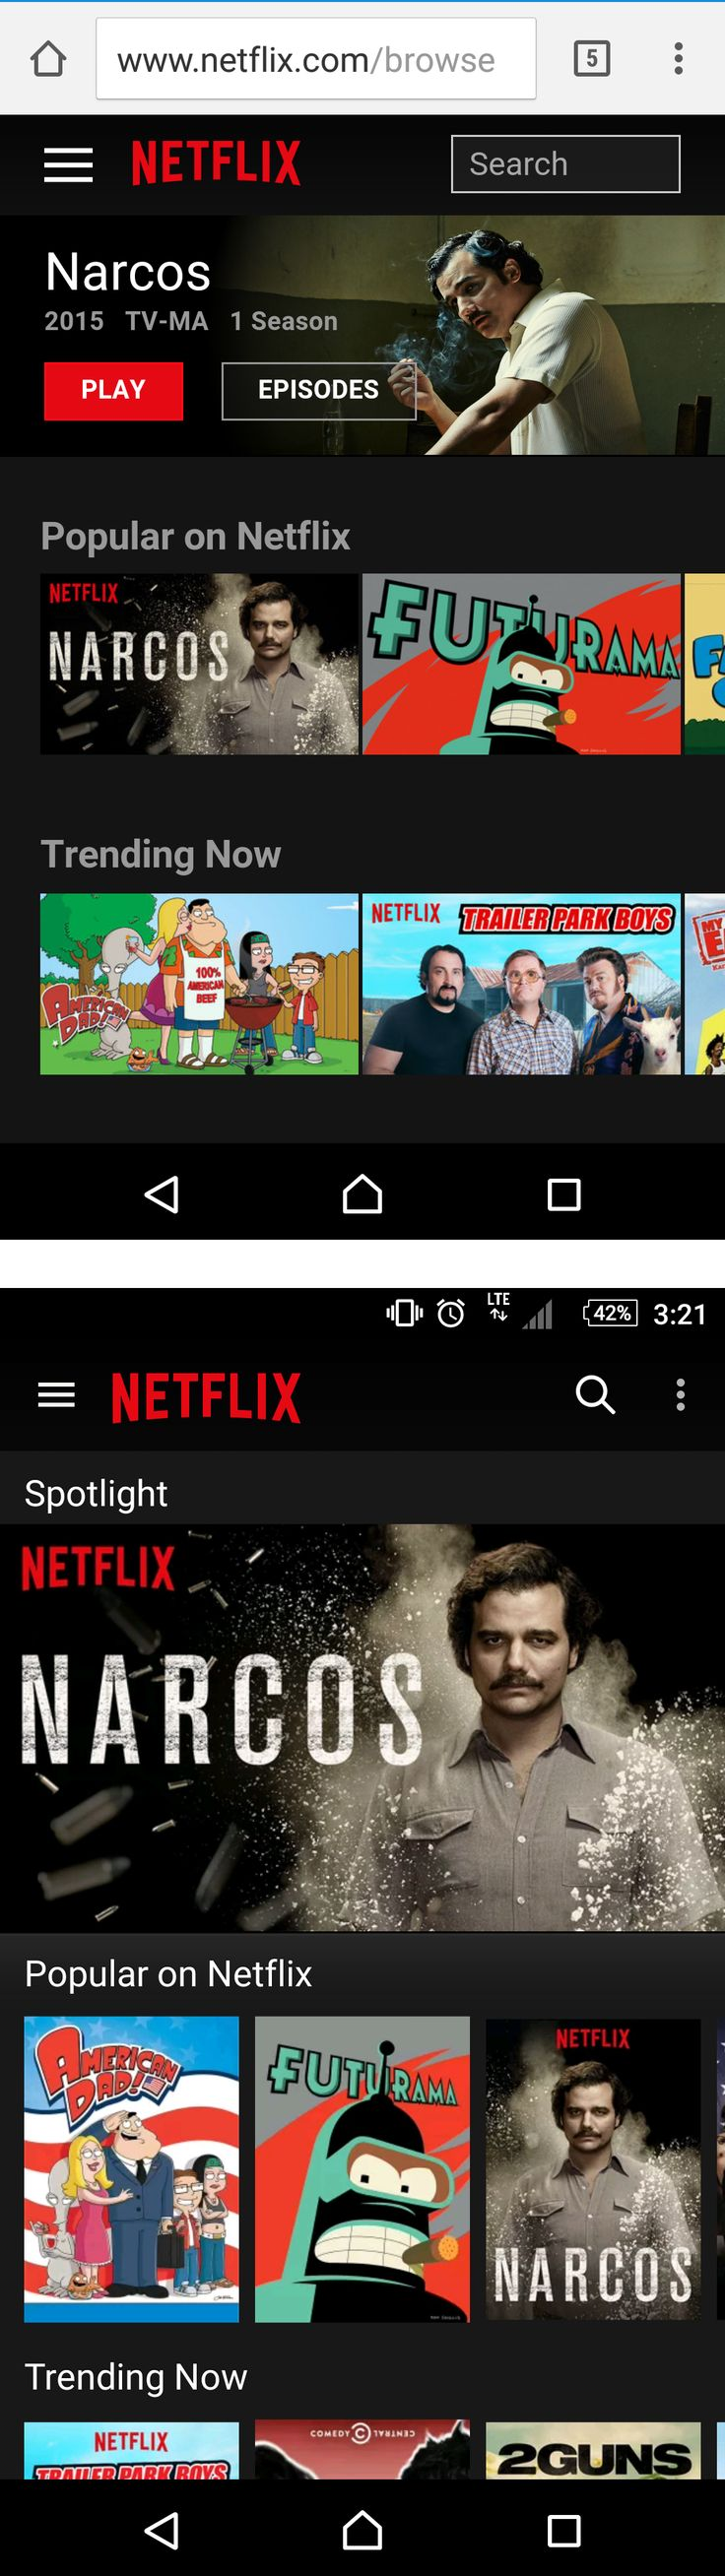 Netflix's mobile app and native app are very similar, the only real difference is the search bar and the orientation of the tiles. The biggest difference interaction wise is that you can swipe from the left to open the sidebar on the native app.